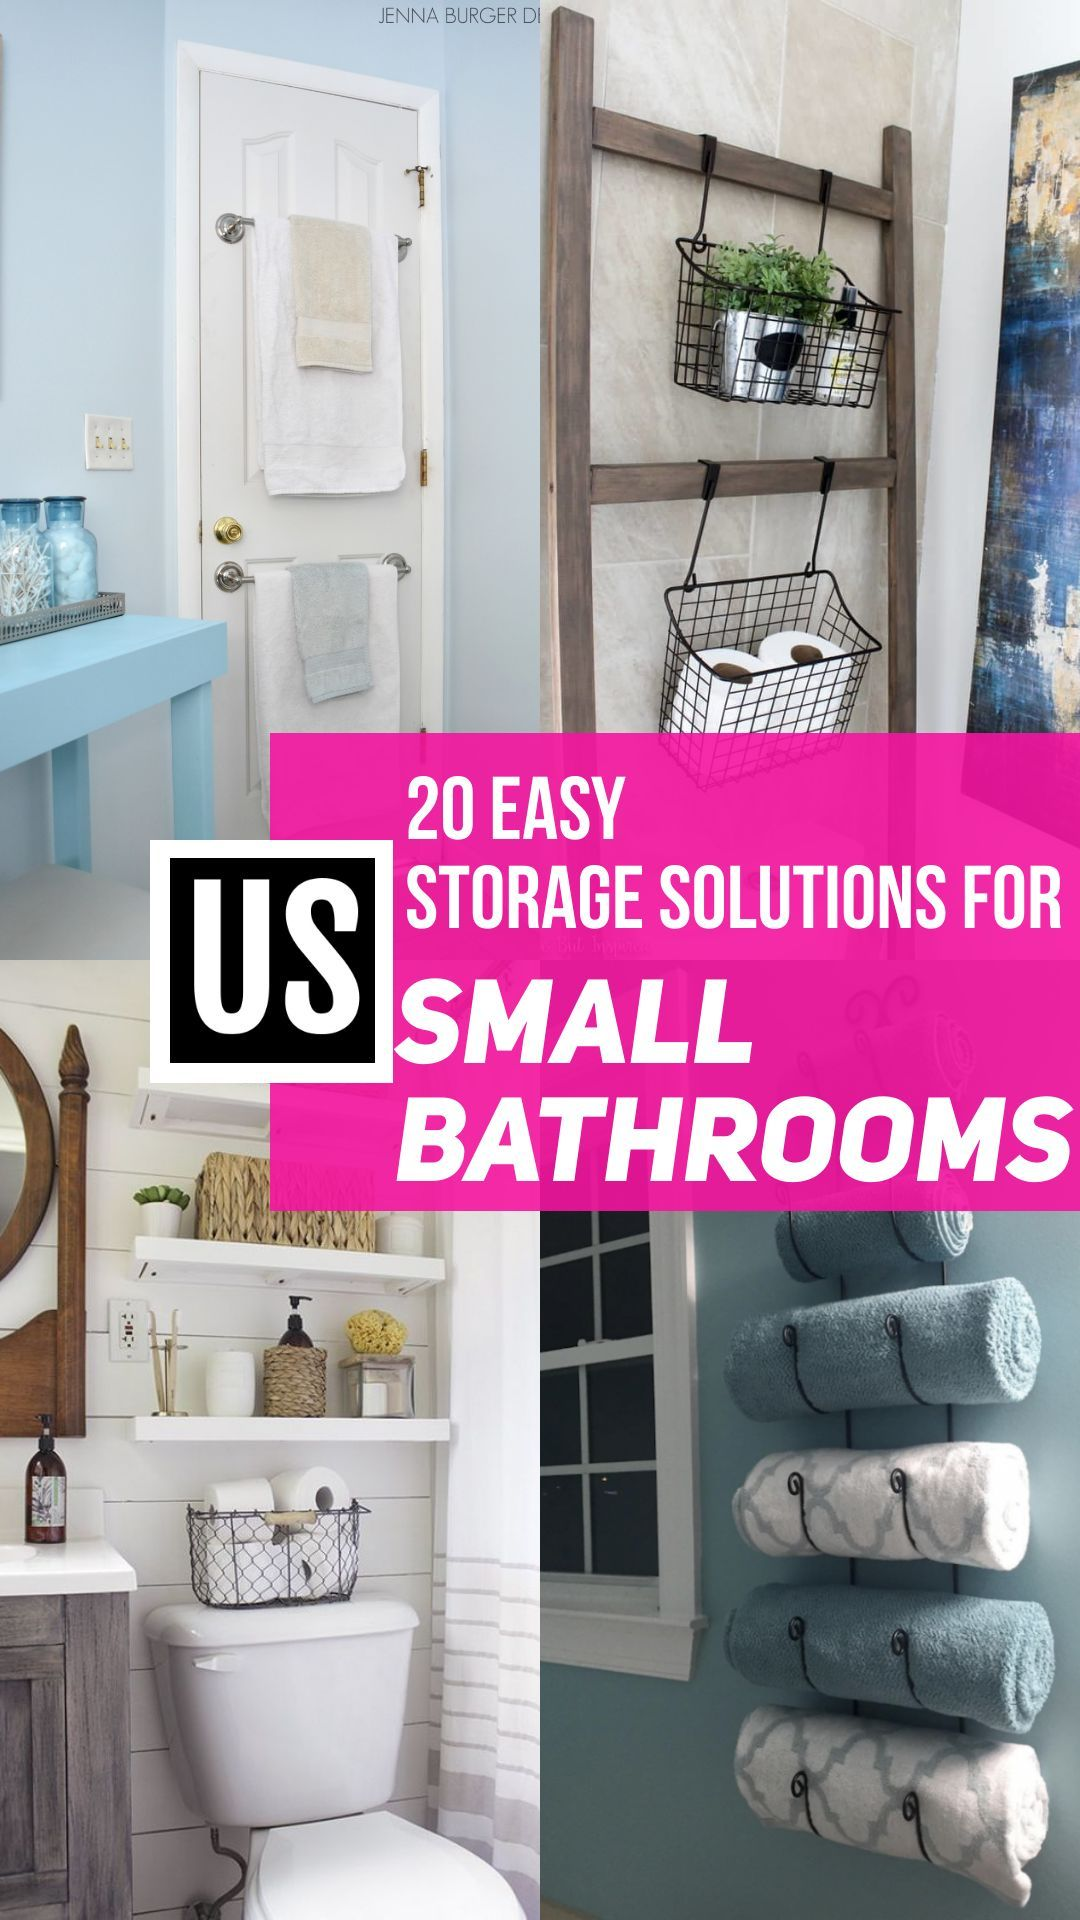 19 Super Smart Bathroom Storage Ideas That Everyone Need To See Diy Bathroom Storage Small Bathroom Storage Bathroom Storage Organization